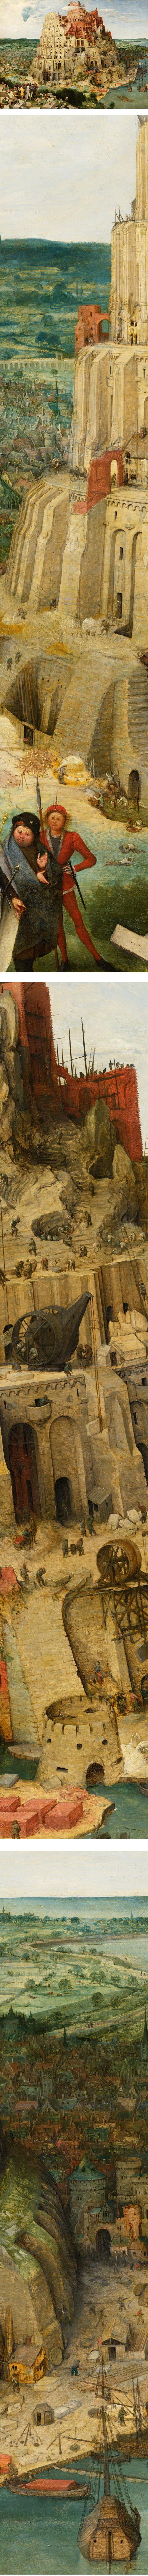 The Tower of Babel, Pieter Bruegel the Elder